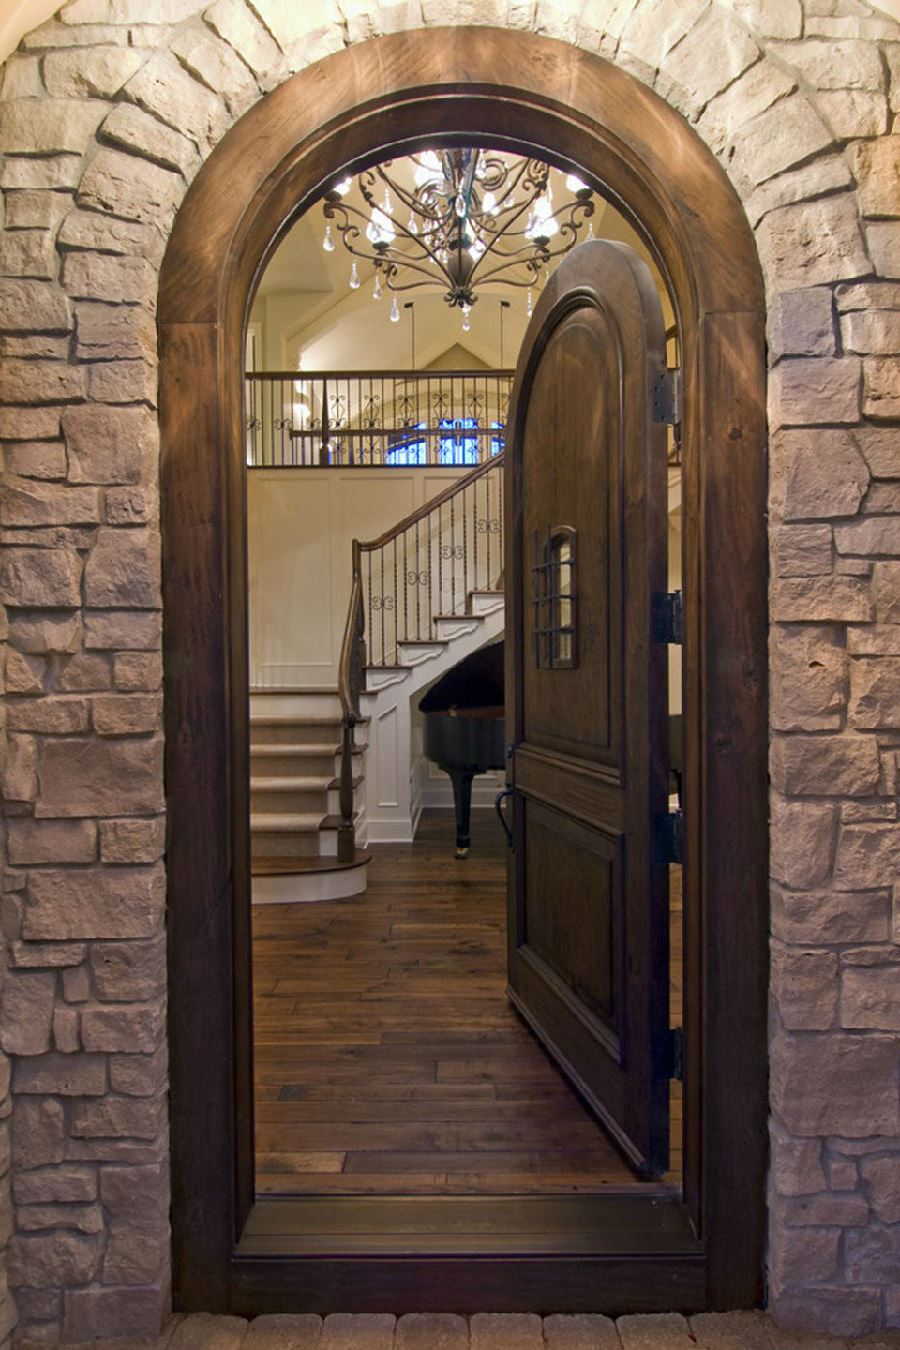 Brick Arch Interior Design